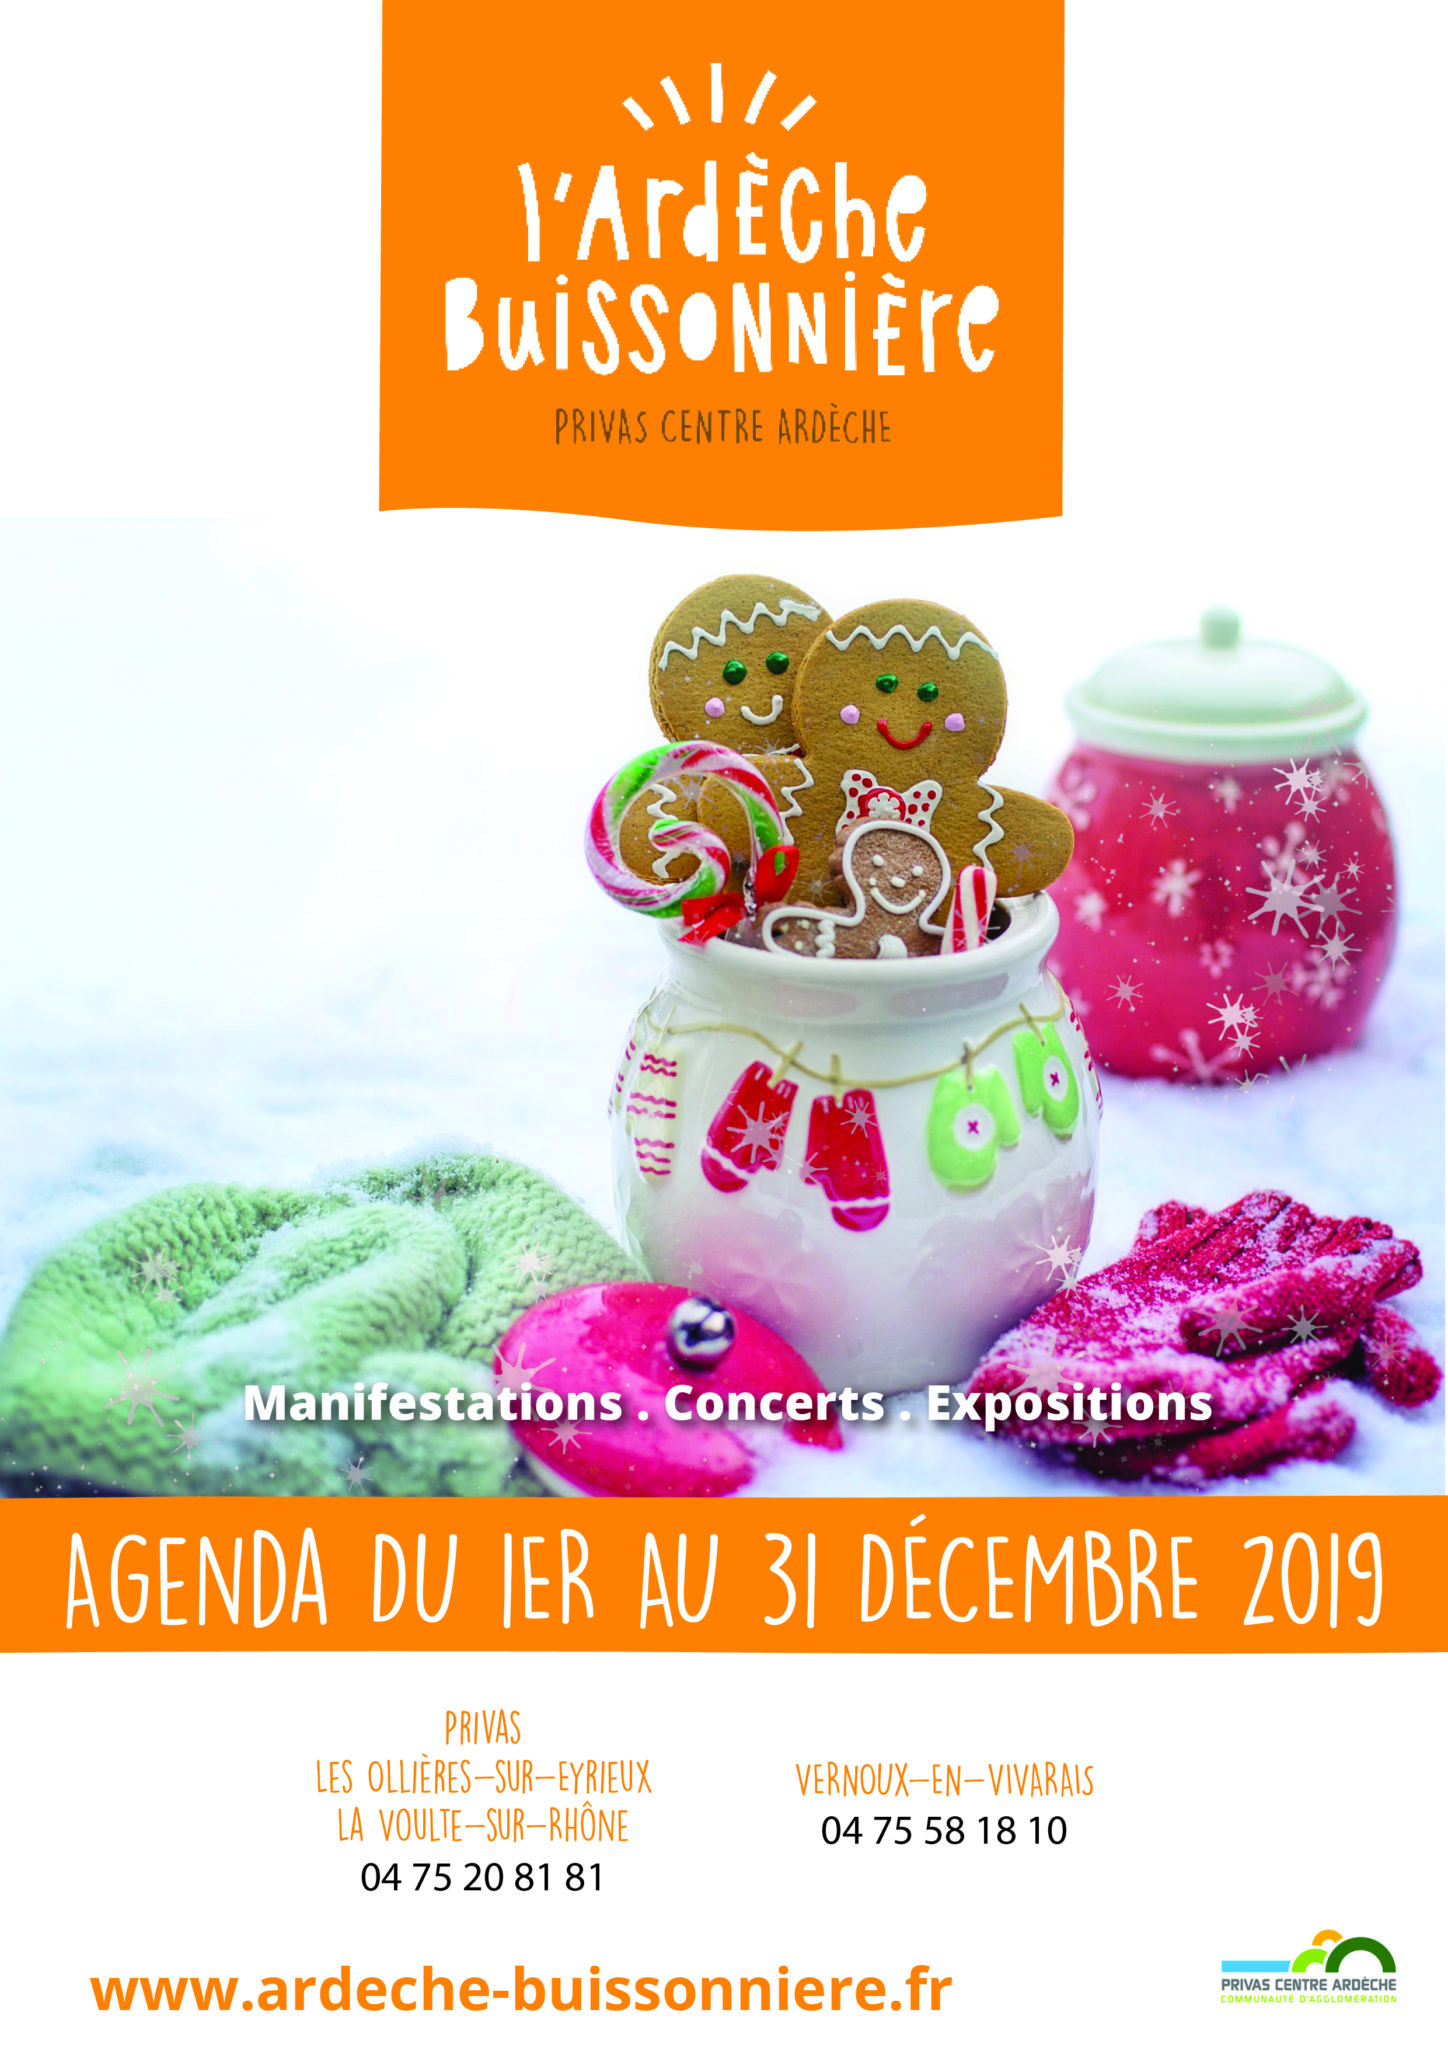 December 2019 events agenda - Ardèche Buissonnière